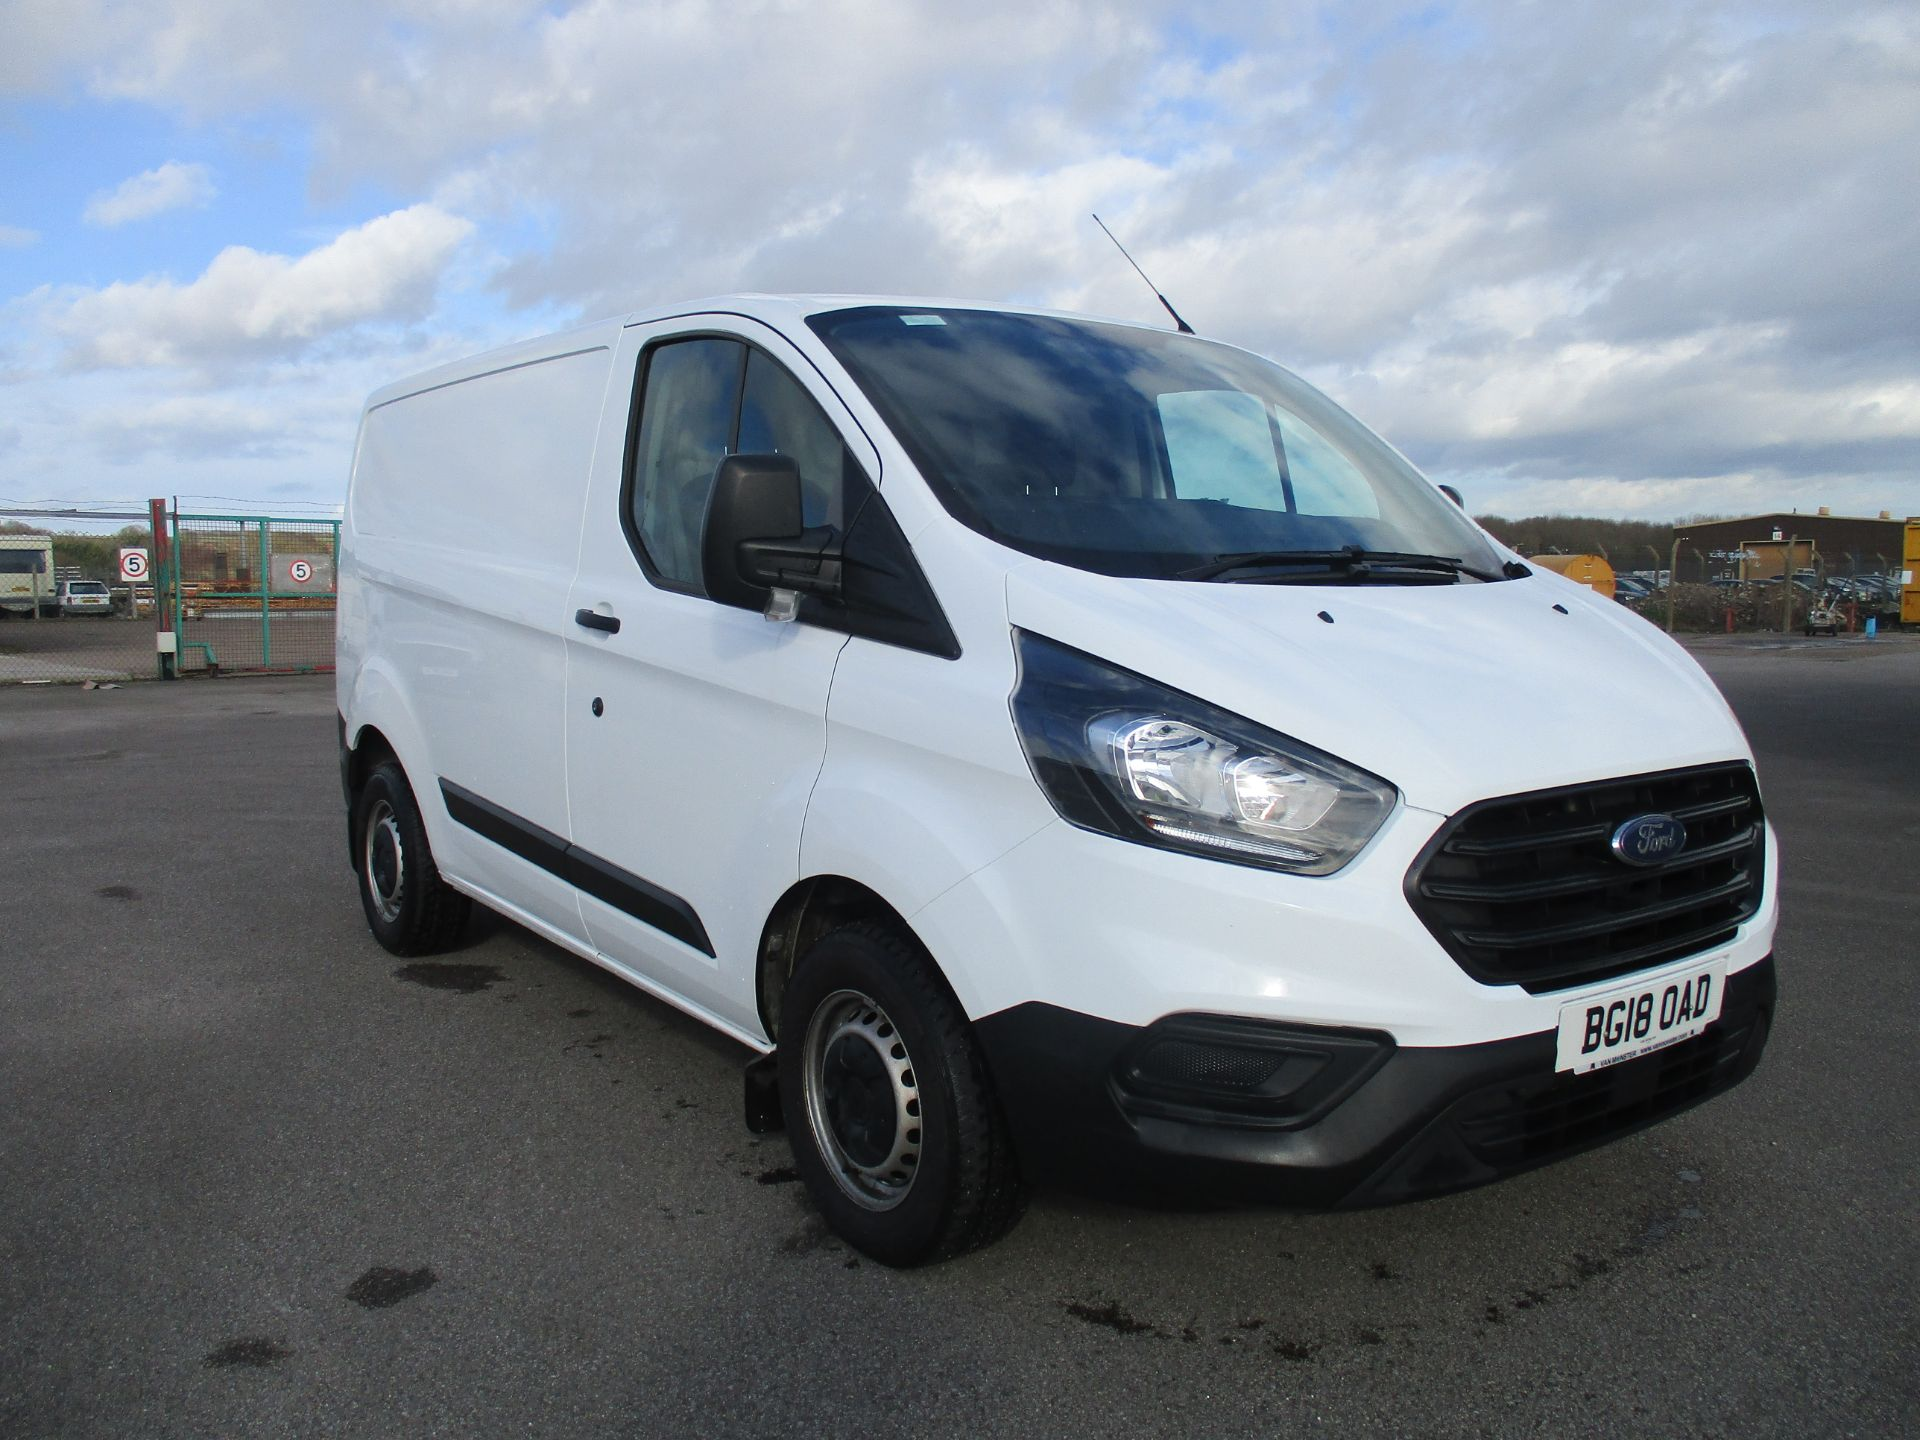 2018 Ford Transit Custom 300 L1 DIESEL FWD 2.0 TDCI 105PS LOW ROOF VAN EURO 6 (BG18OAD)